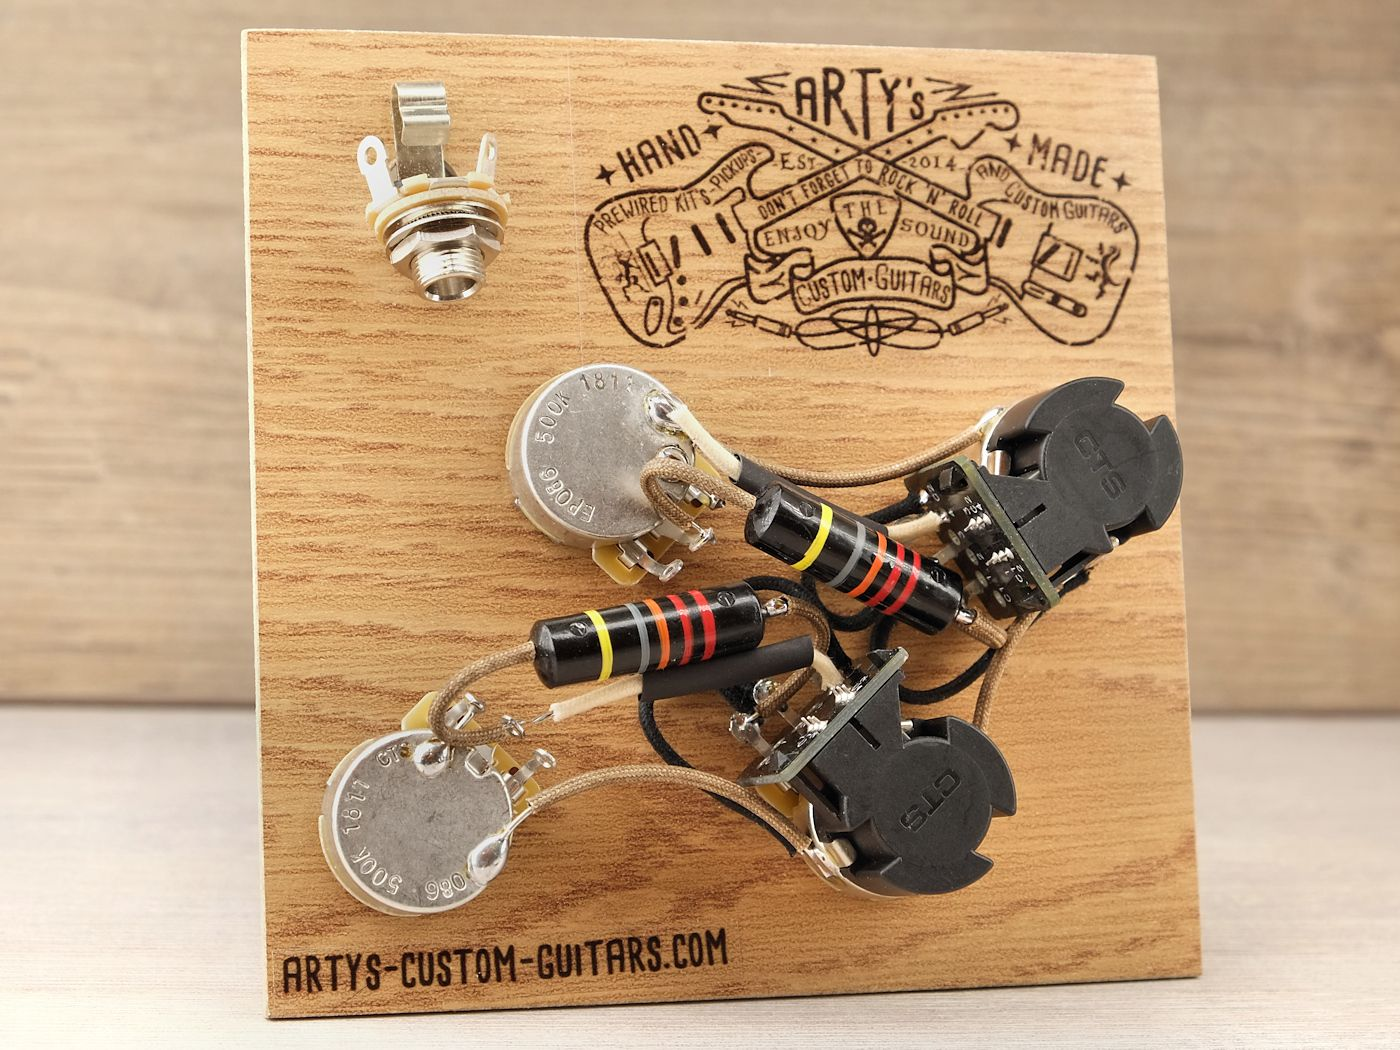 Artys Custom Guitars Les Paul Coil Splitting Prewired Harness Pre Wired Wiring Assembly Kit Gibson Bumble Bee Black